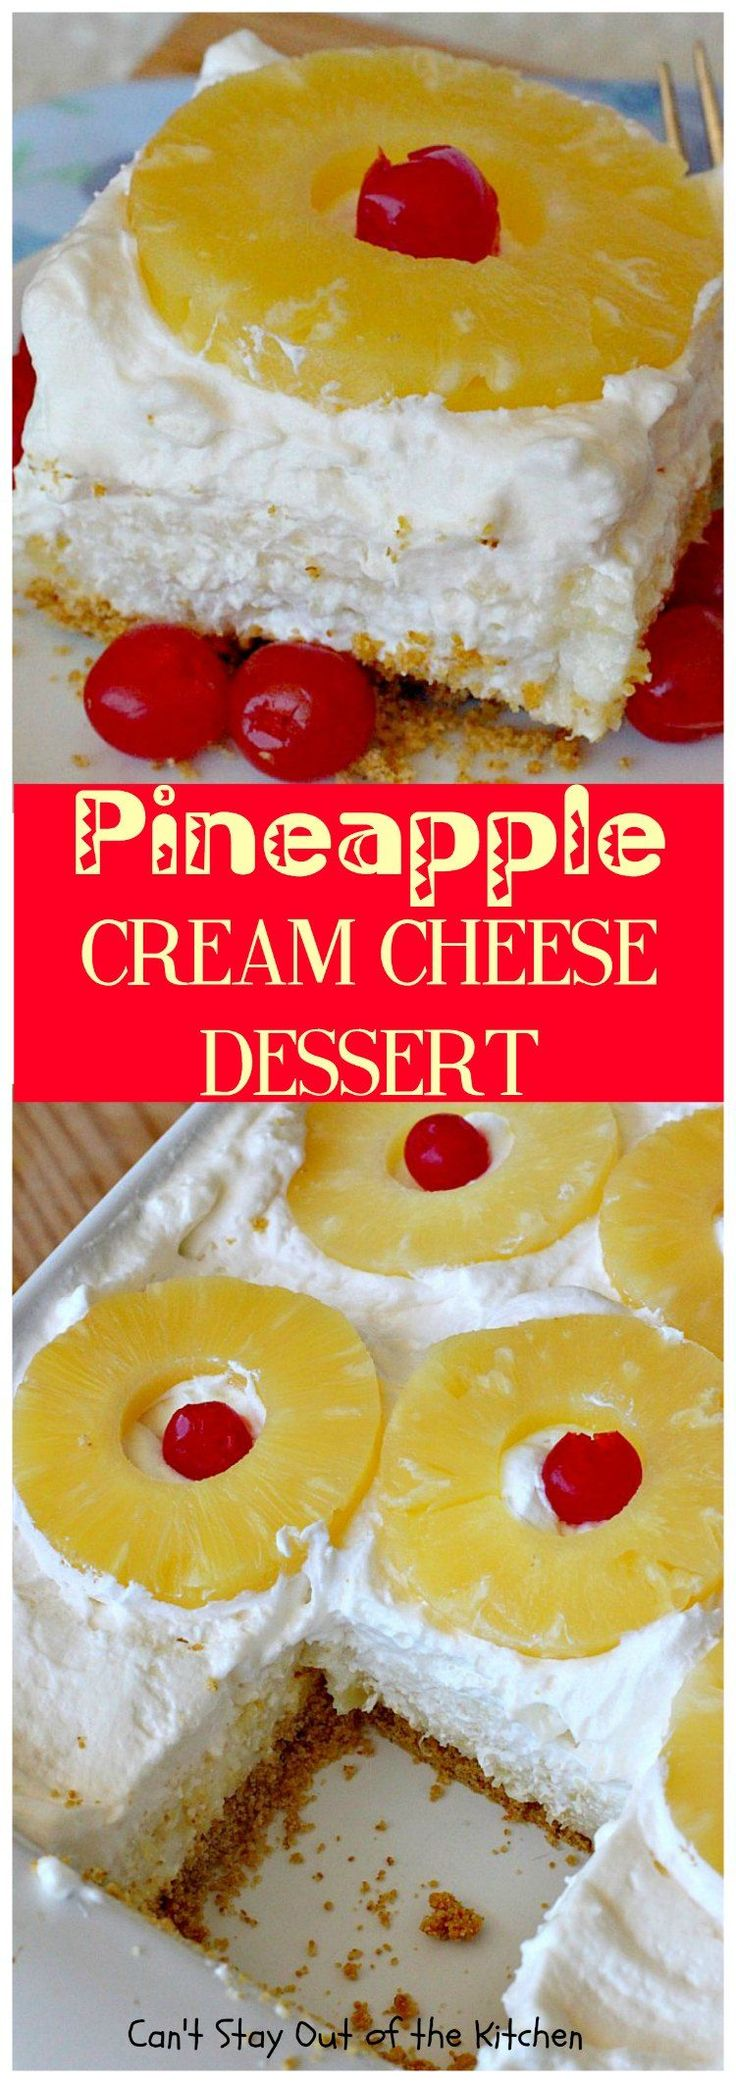 Pineapple Cream Cheese Dessert Can T Stay Out Of The Kitchen Fabulous